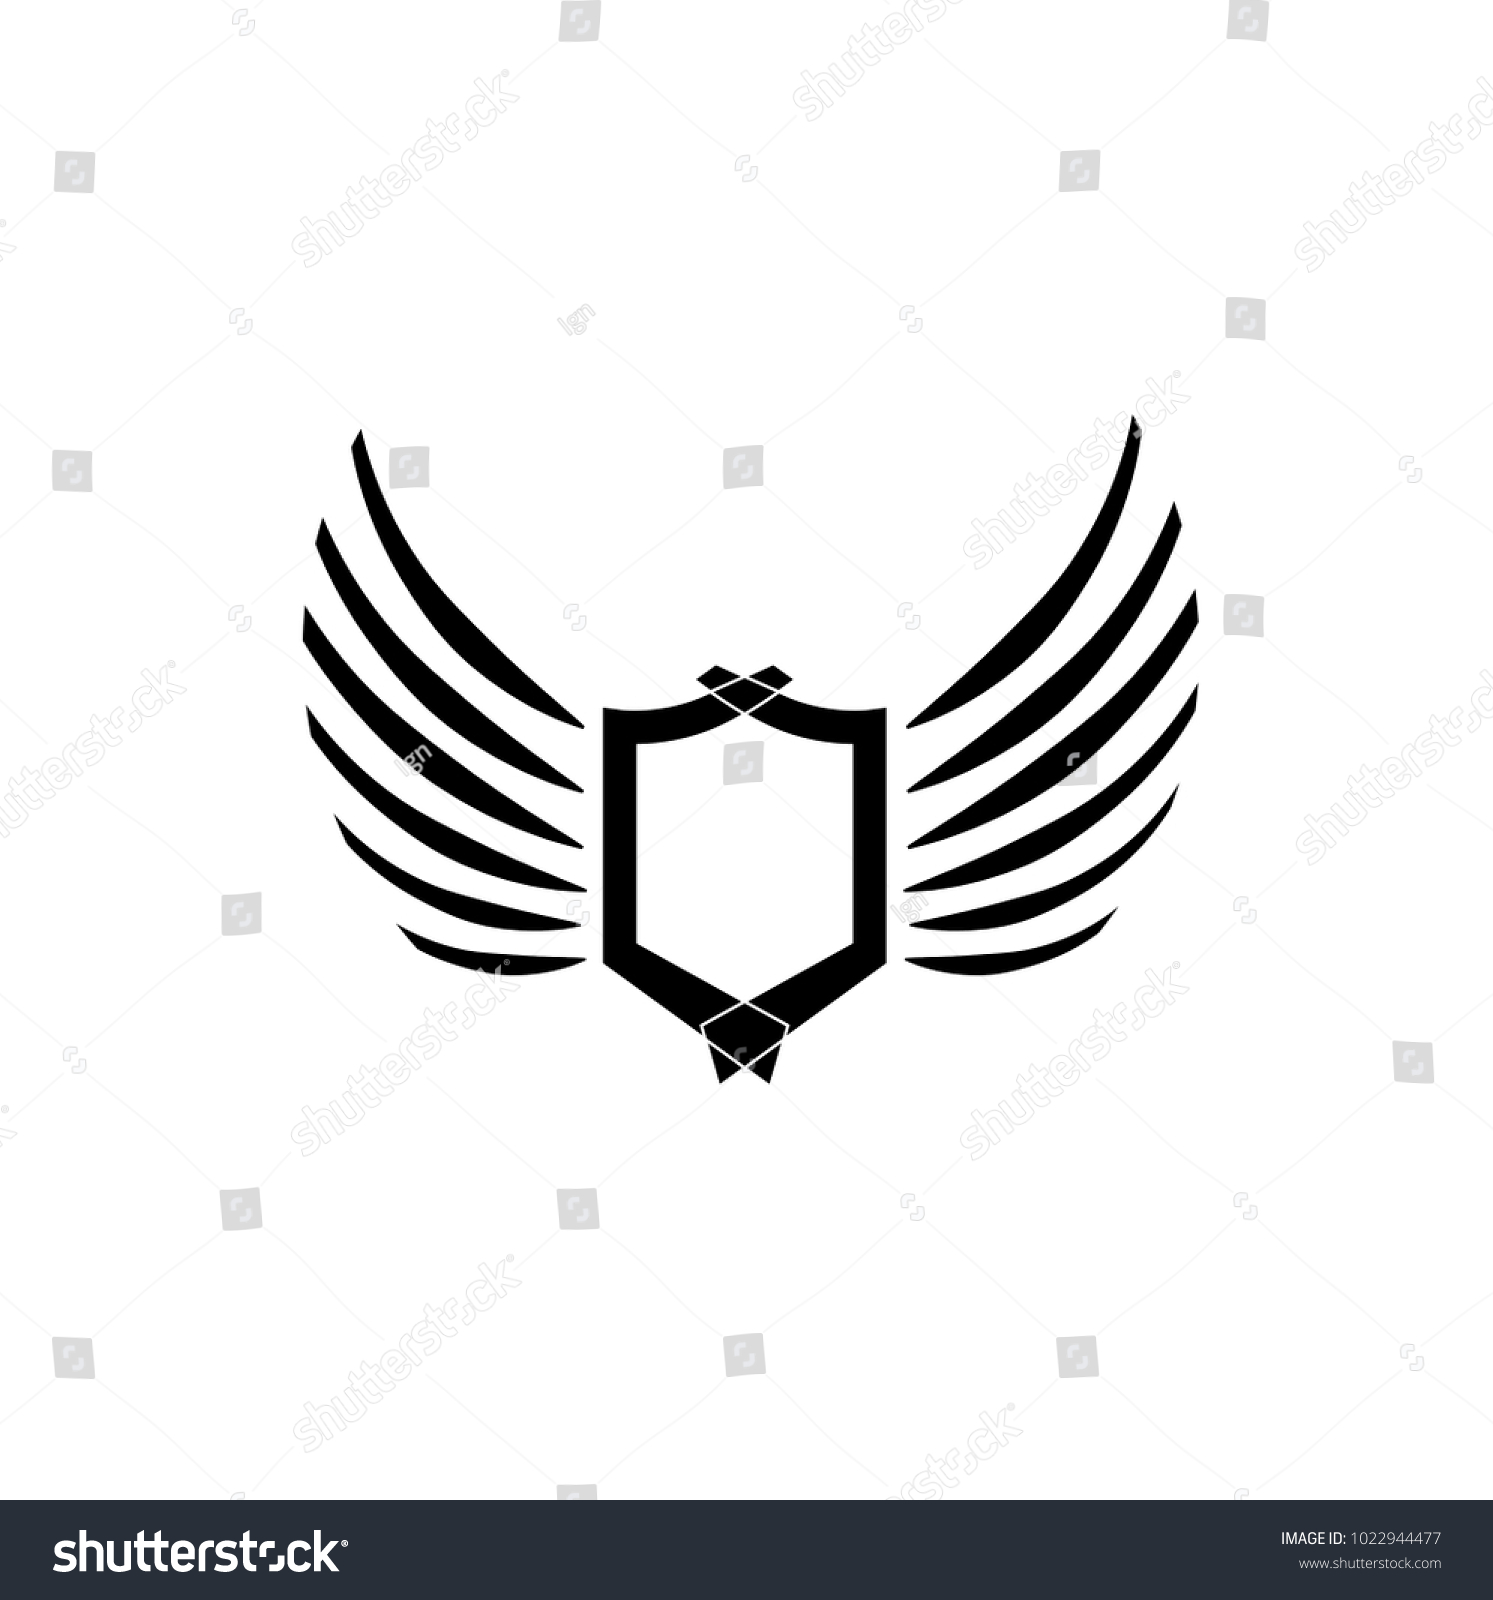 eagle wing diagram what is an indicator wings logo vector icon sign graphic illustration symbol id 1022944477